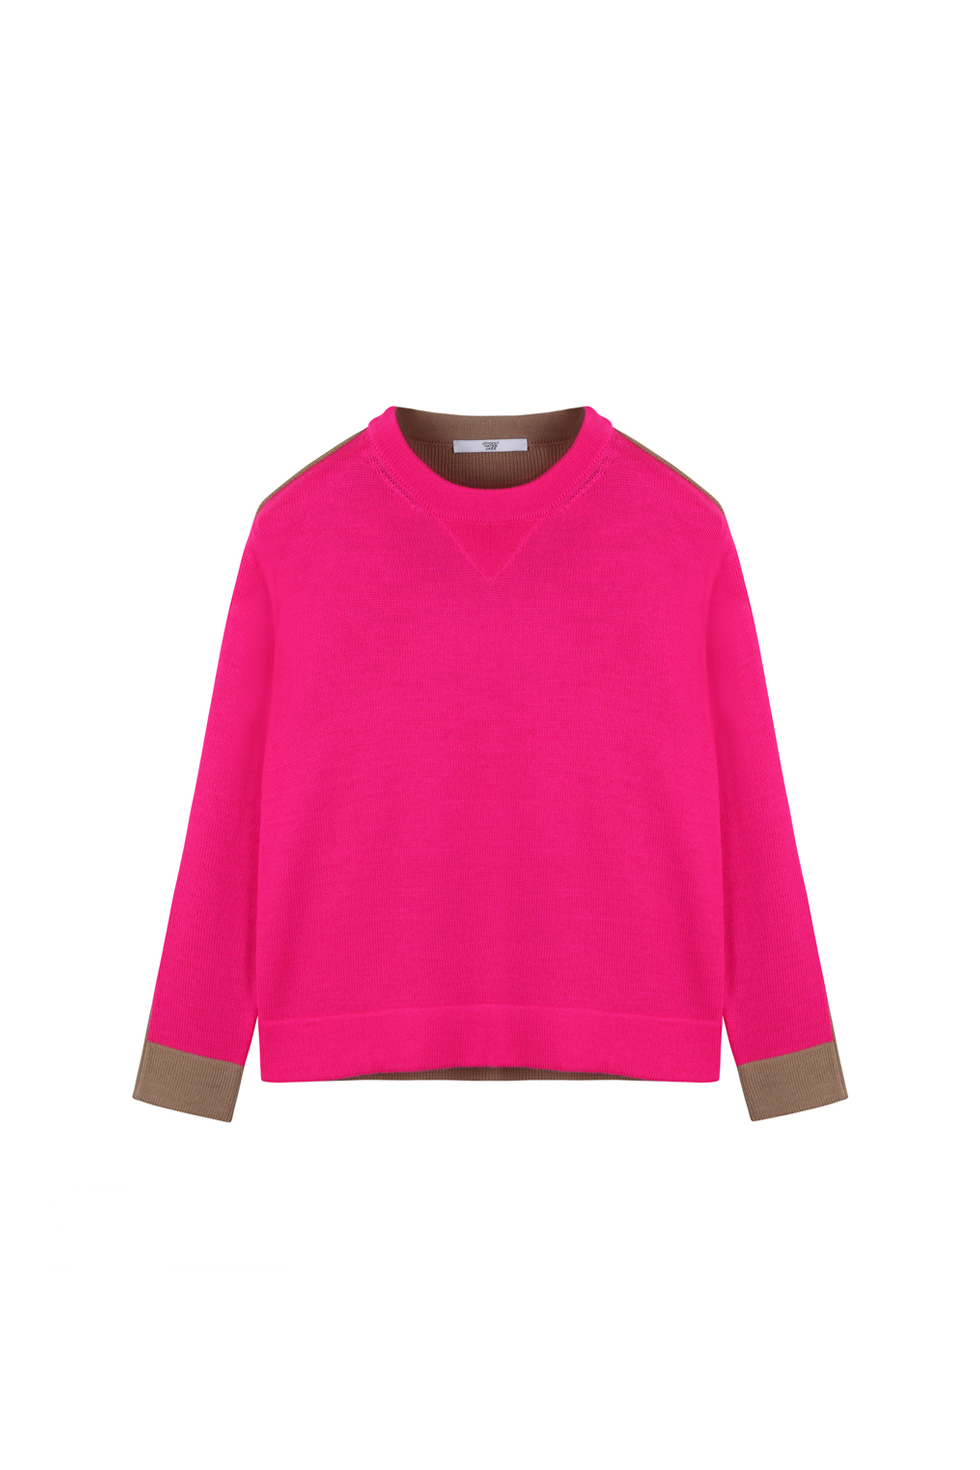 CONTRASTING CROP KNIT - PINK